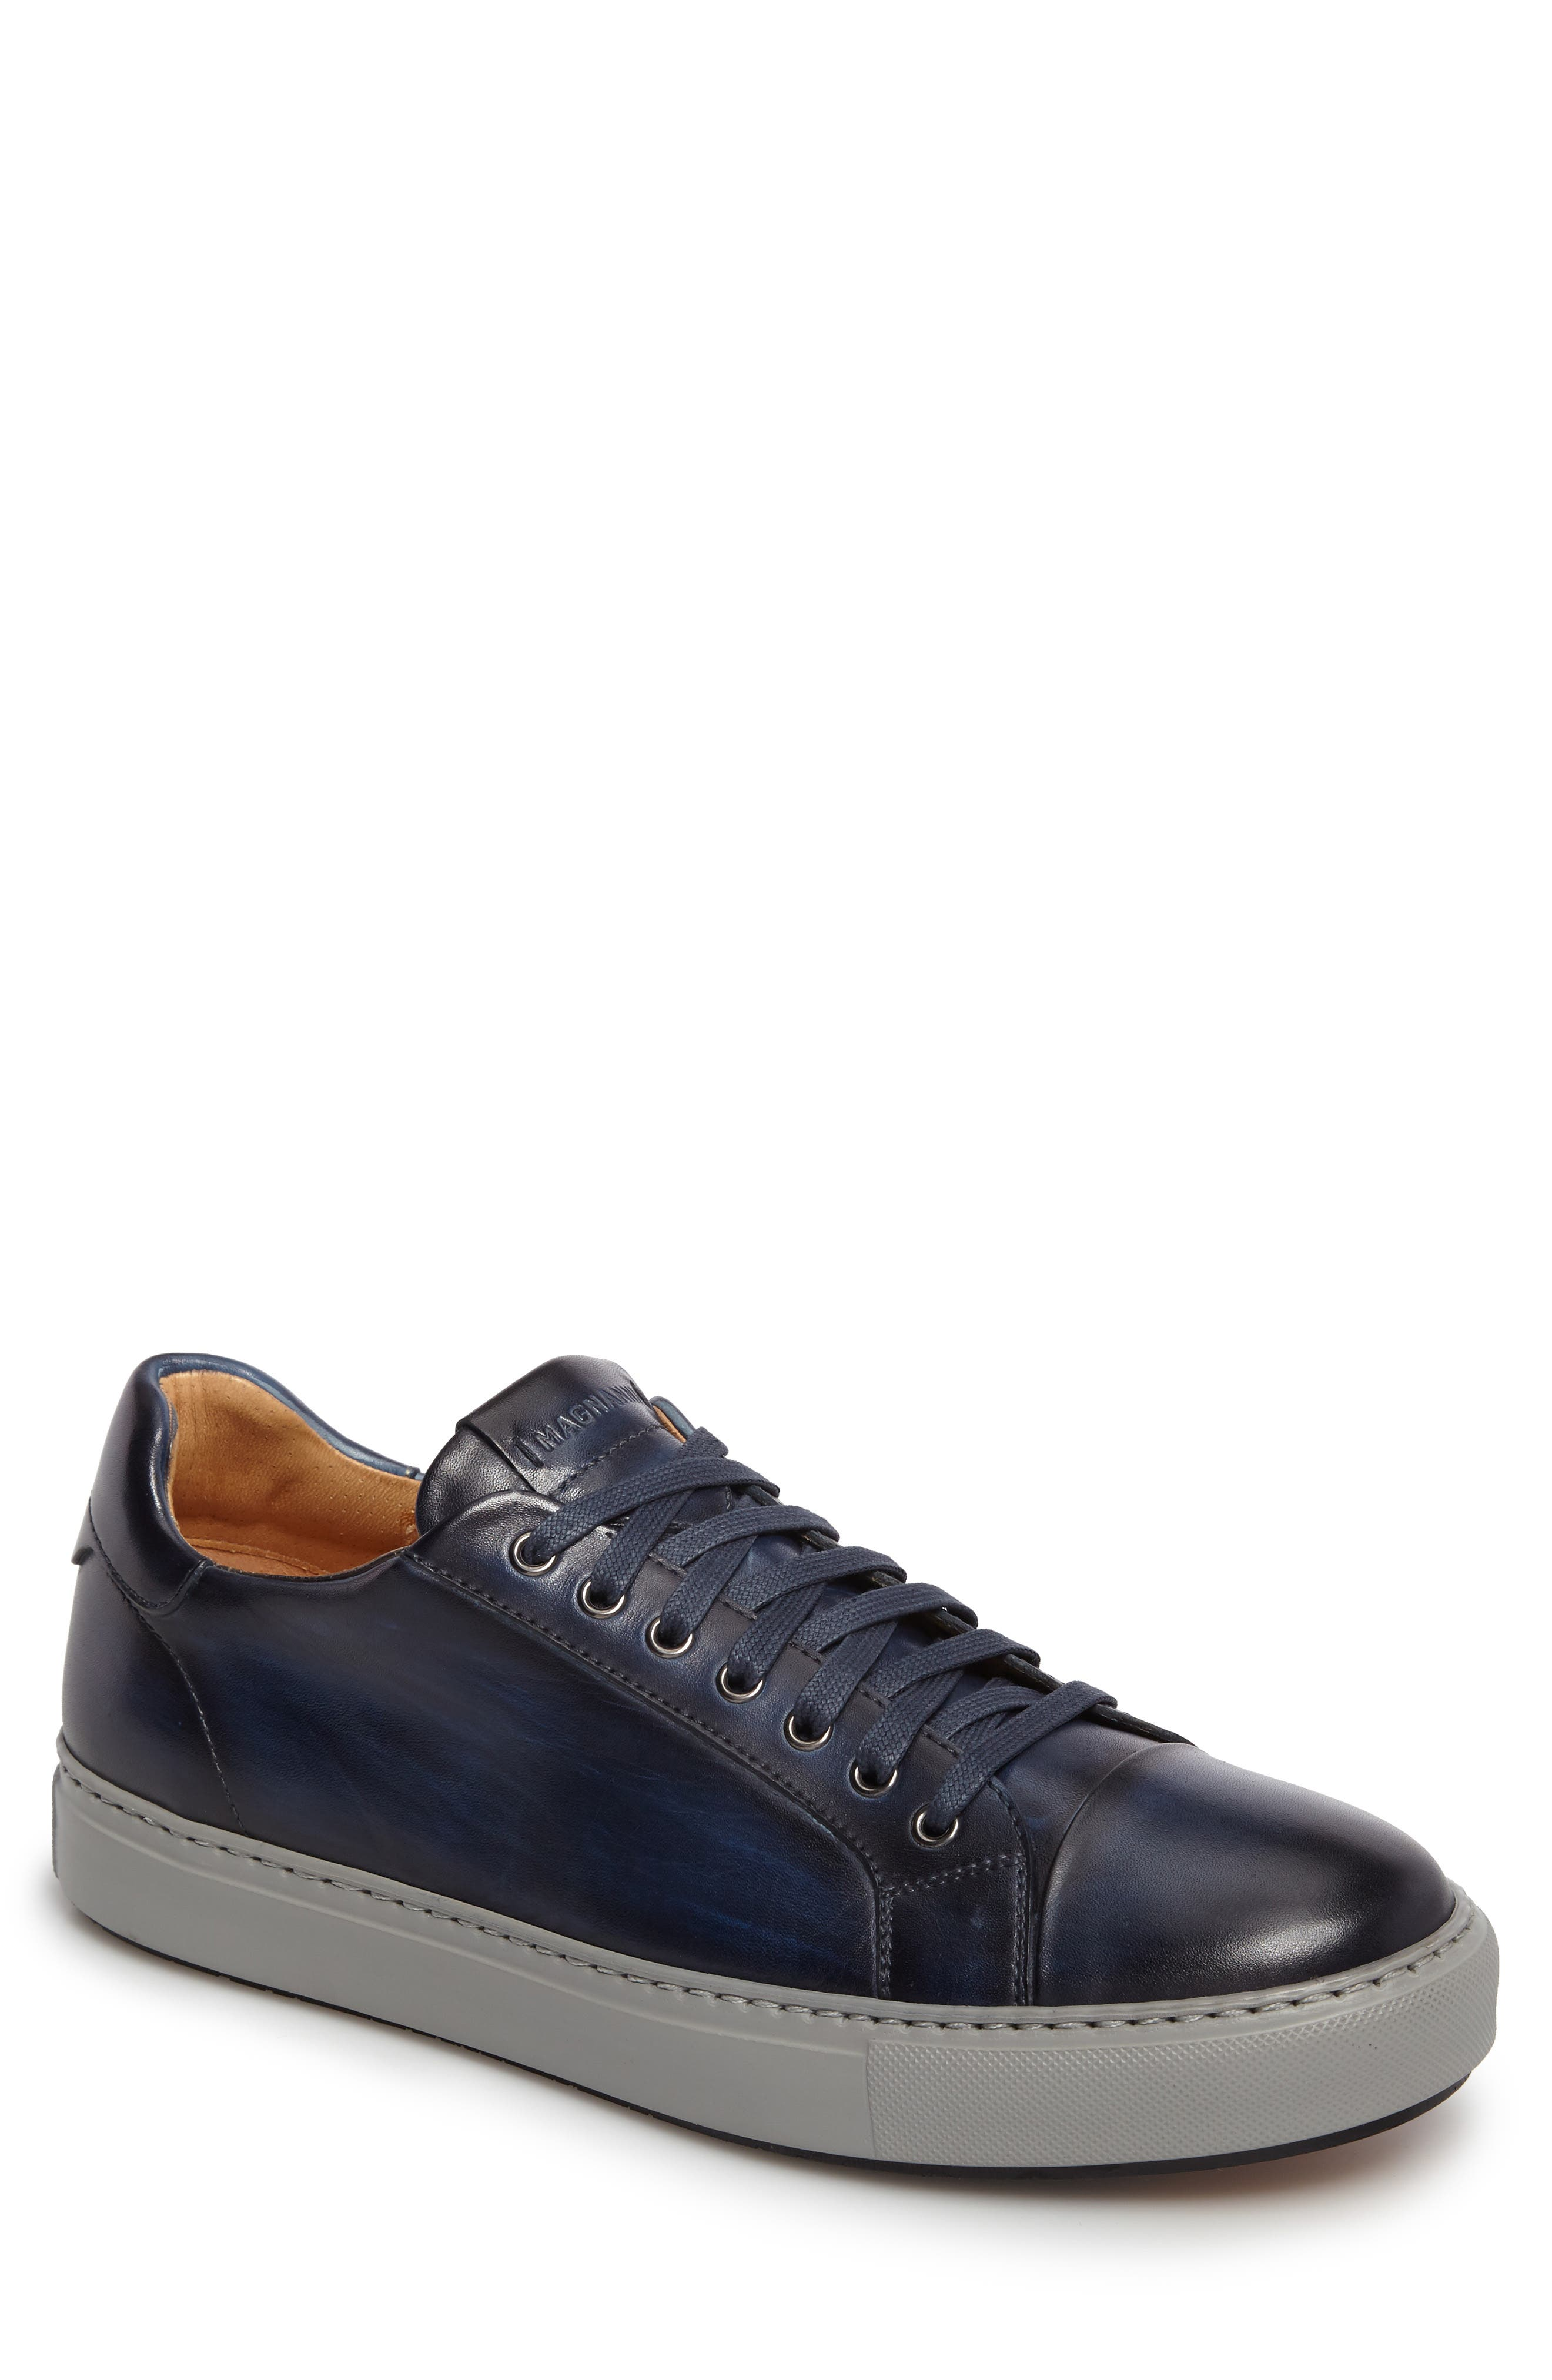 Kaden Lo Sneaker,                         Main,                         color, Brushed Navy Leather